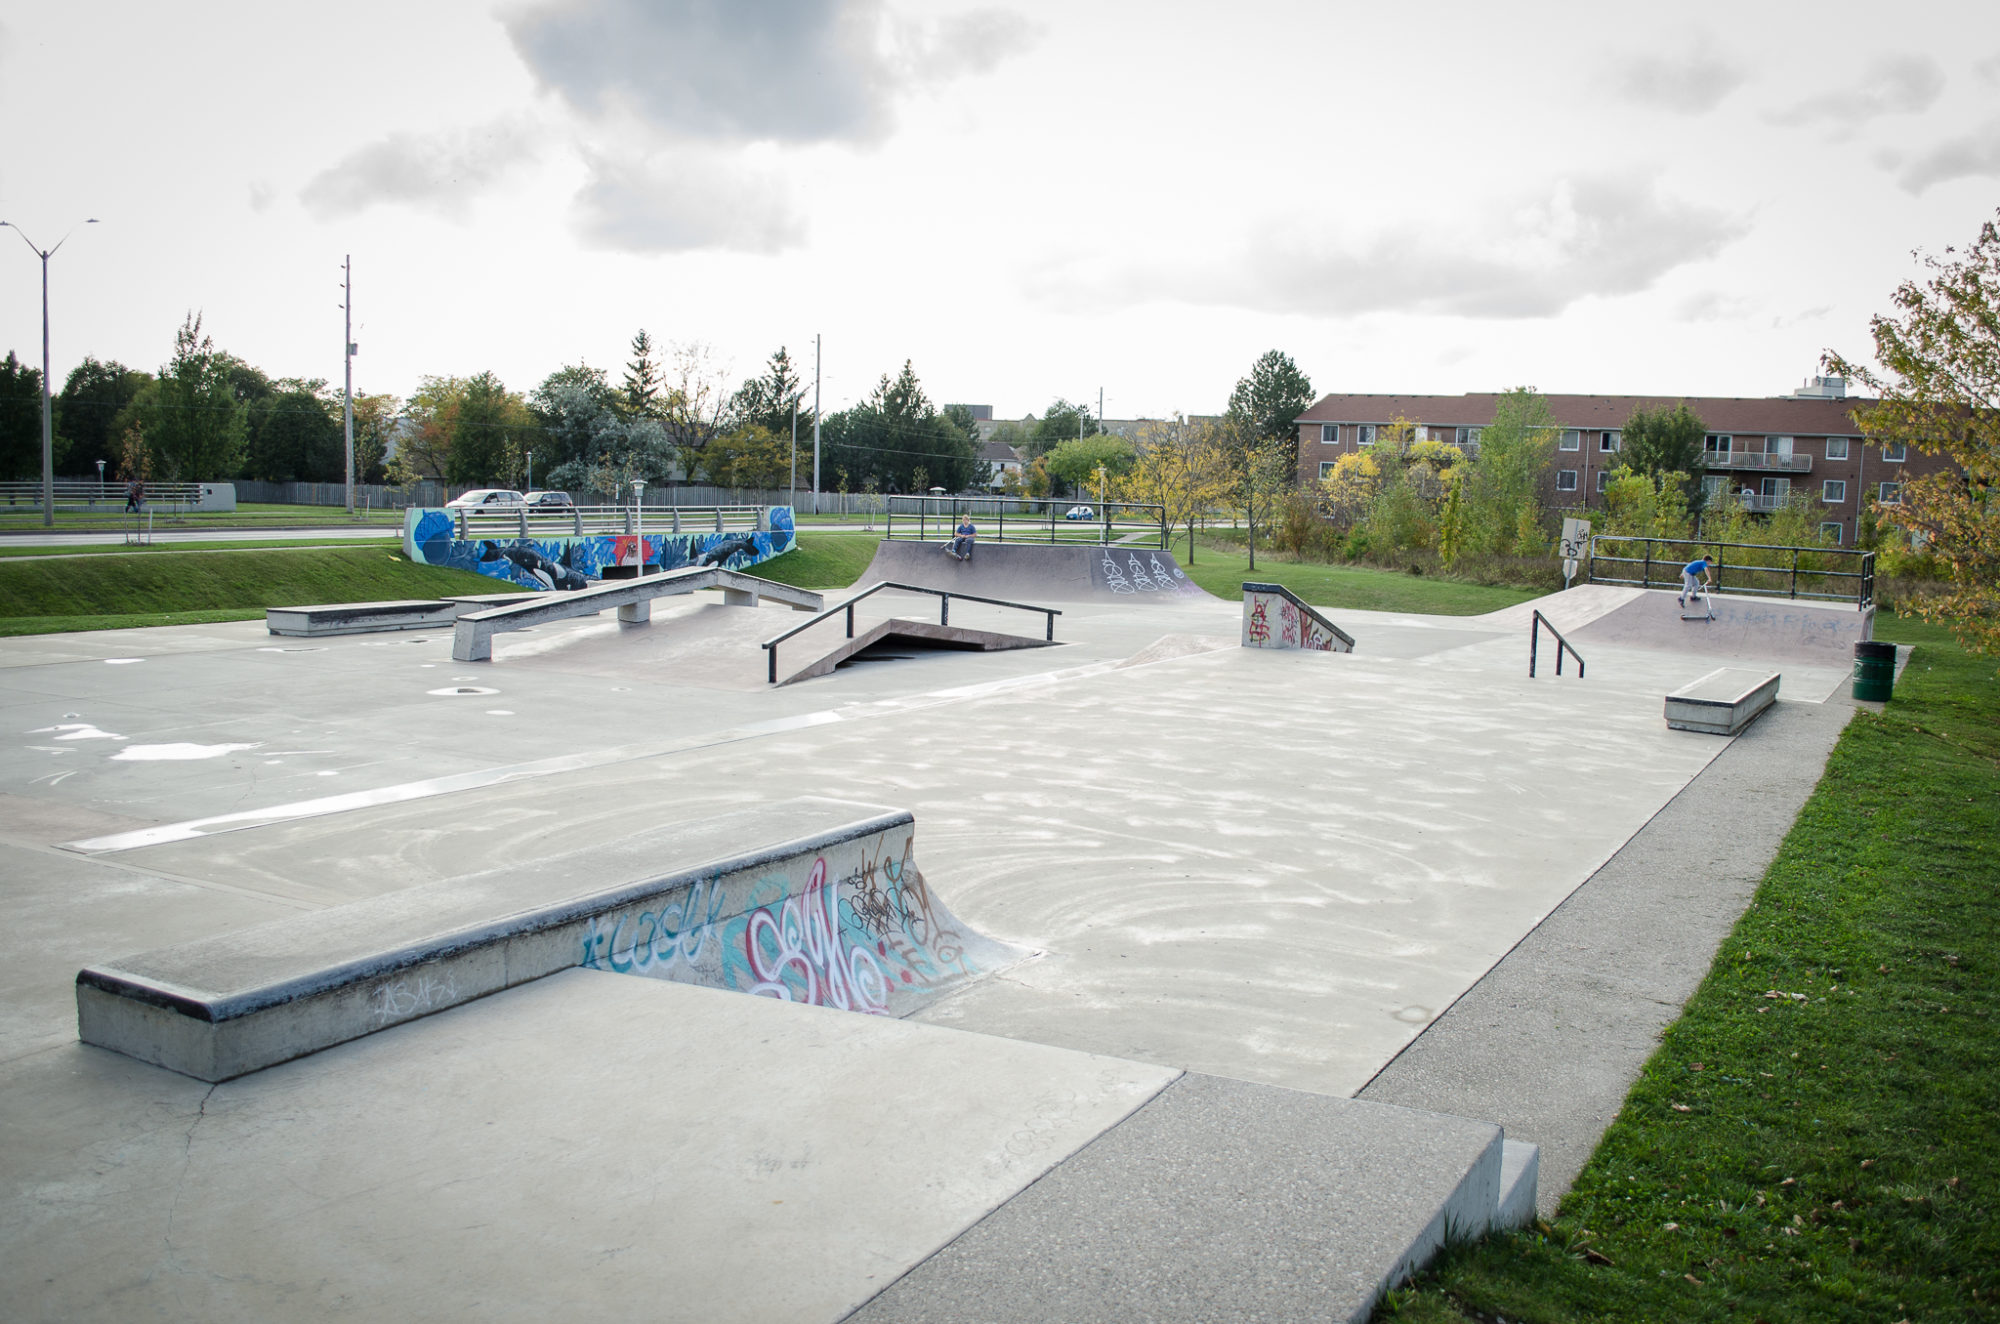 Skate Park In White Oaks, London, Ontario